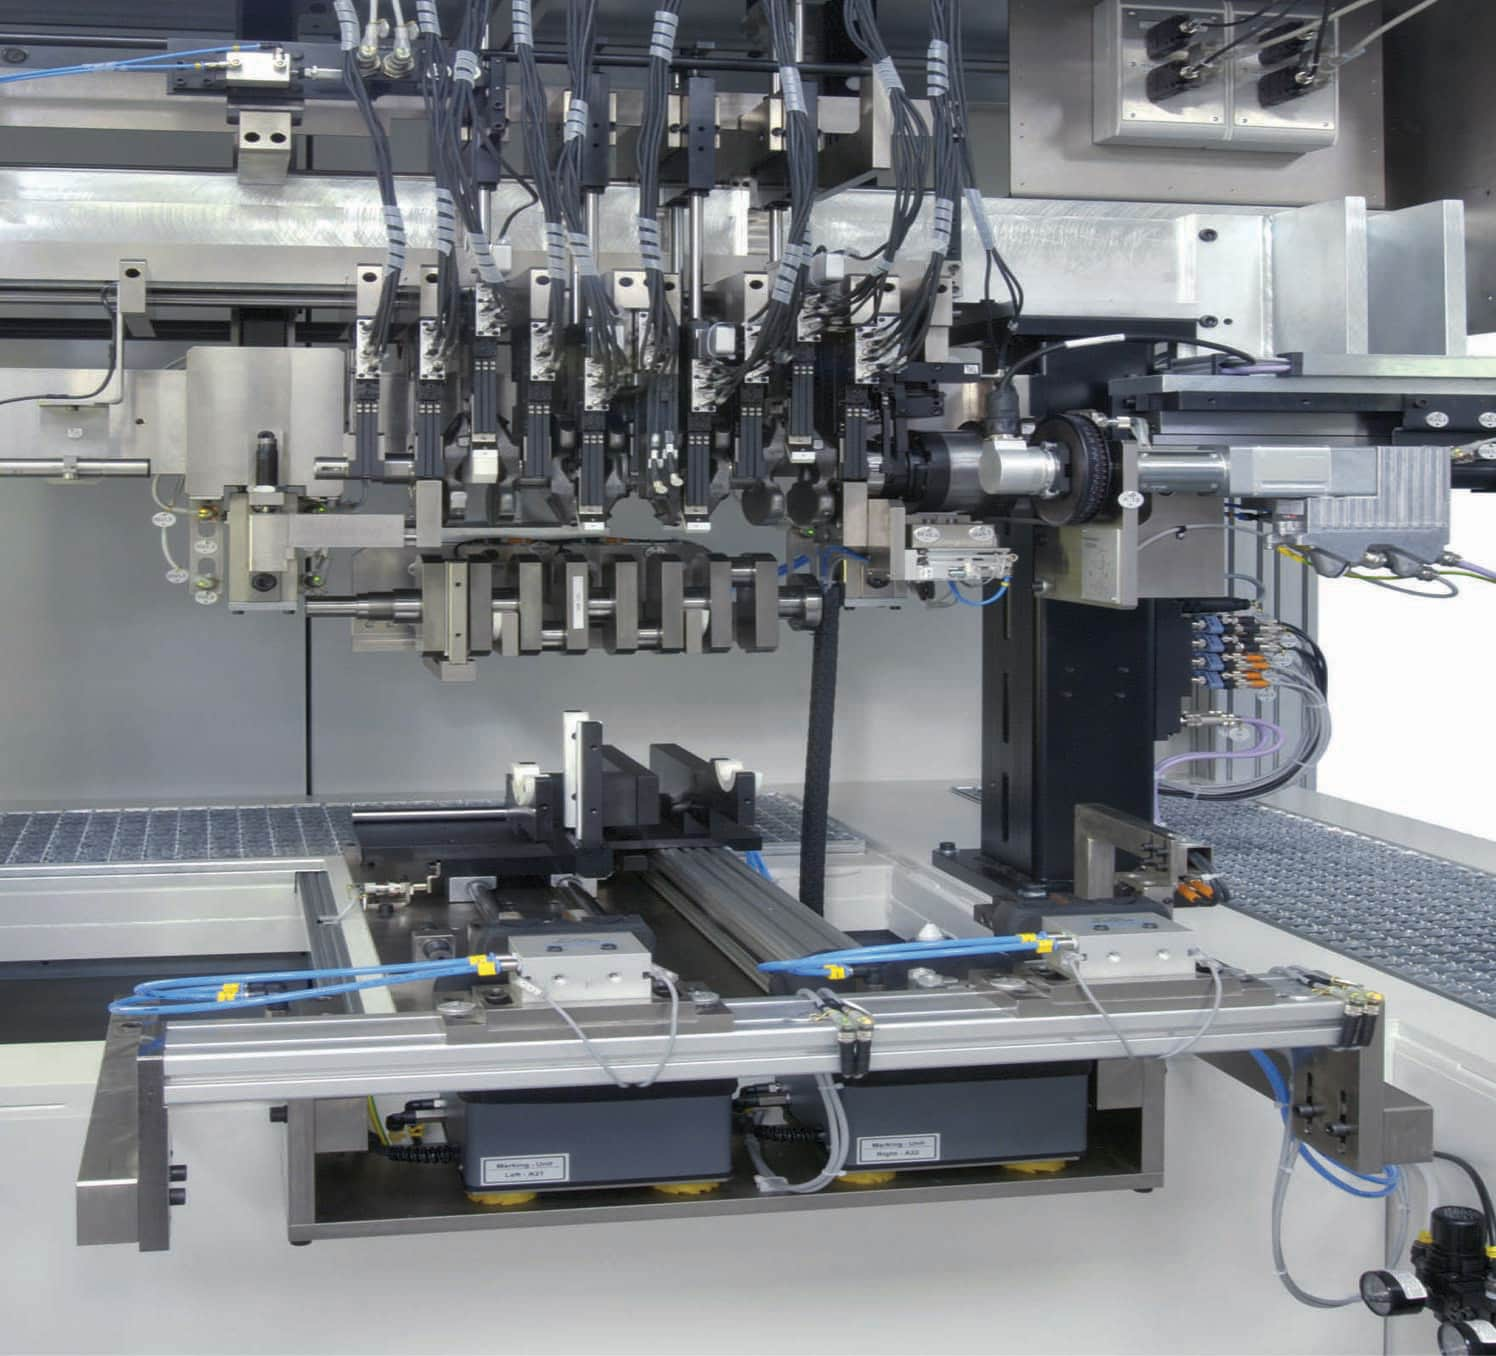 The measuring machines from Jenoptik feature tactile, pneumatic and optical measuring methods